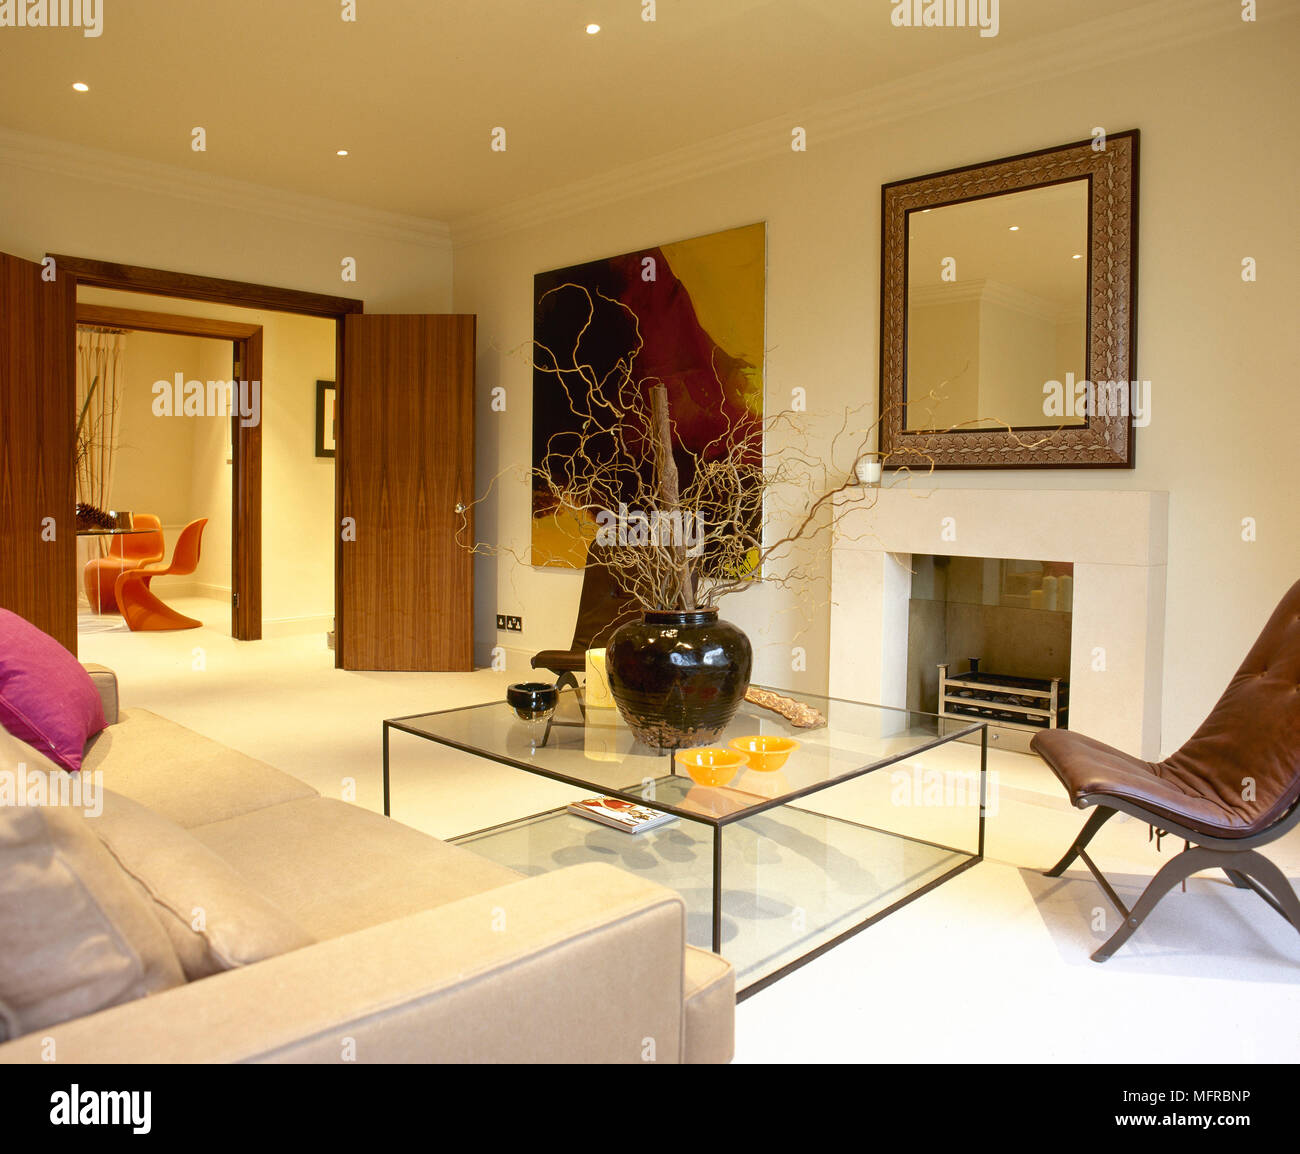 Sitting room with open double doors, seating area with glass box ...